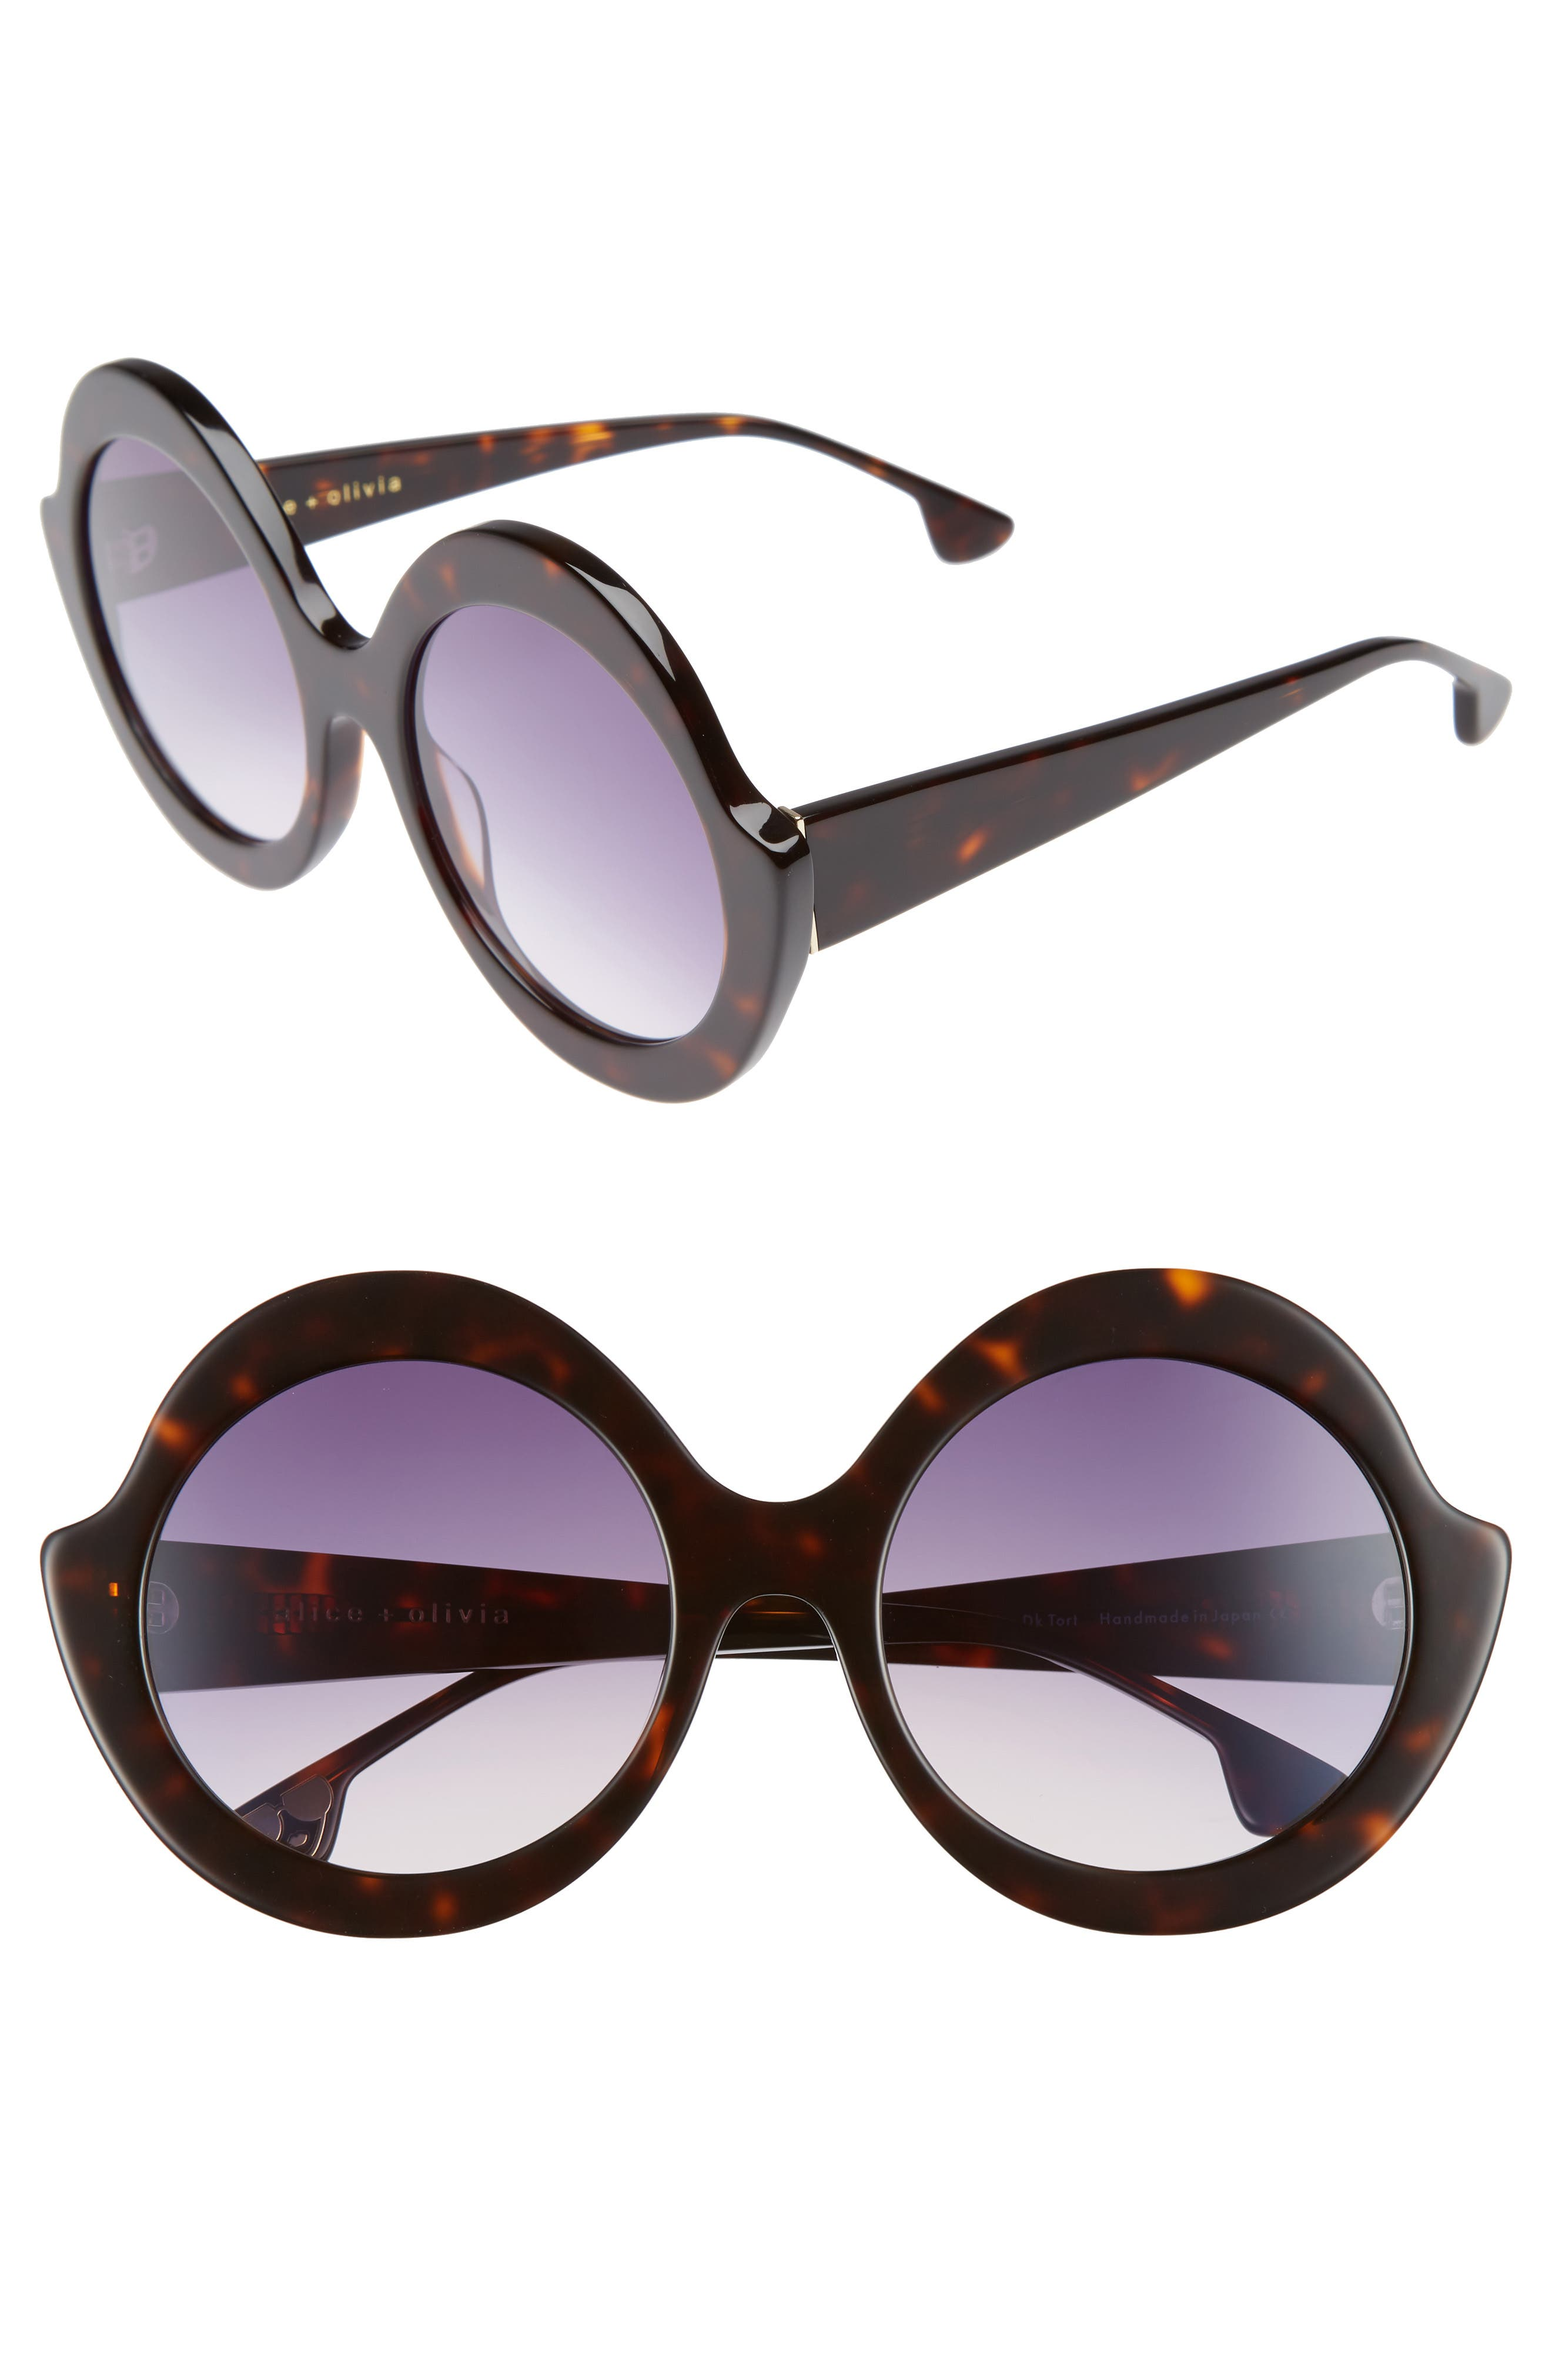 ALICE AND OLIVIA STACEY 56MM ROUND GRADIENT LENS SUNGLASSES - DARK TORTOISE, BROWN PATTERN